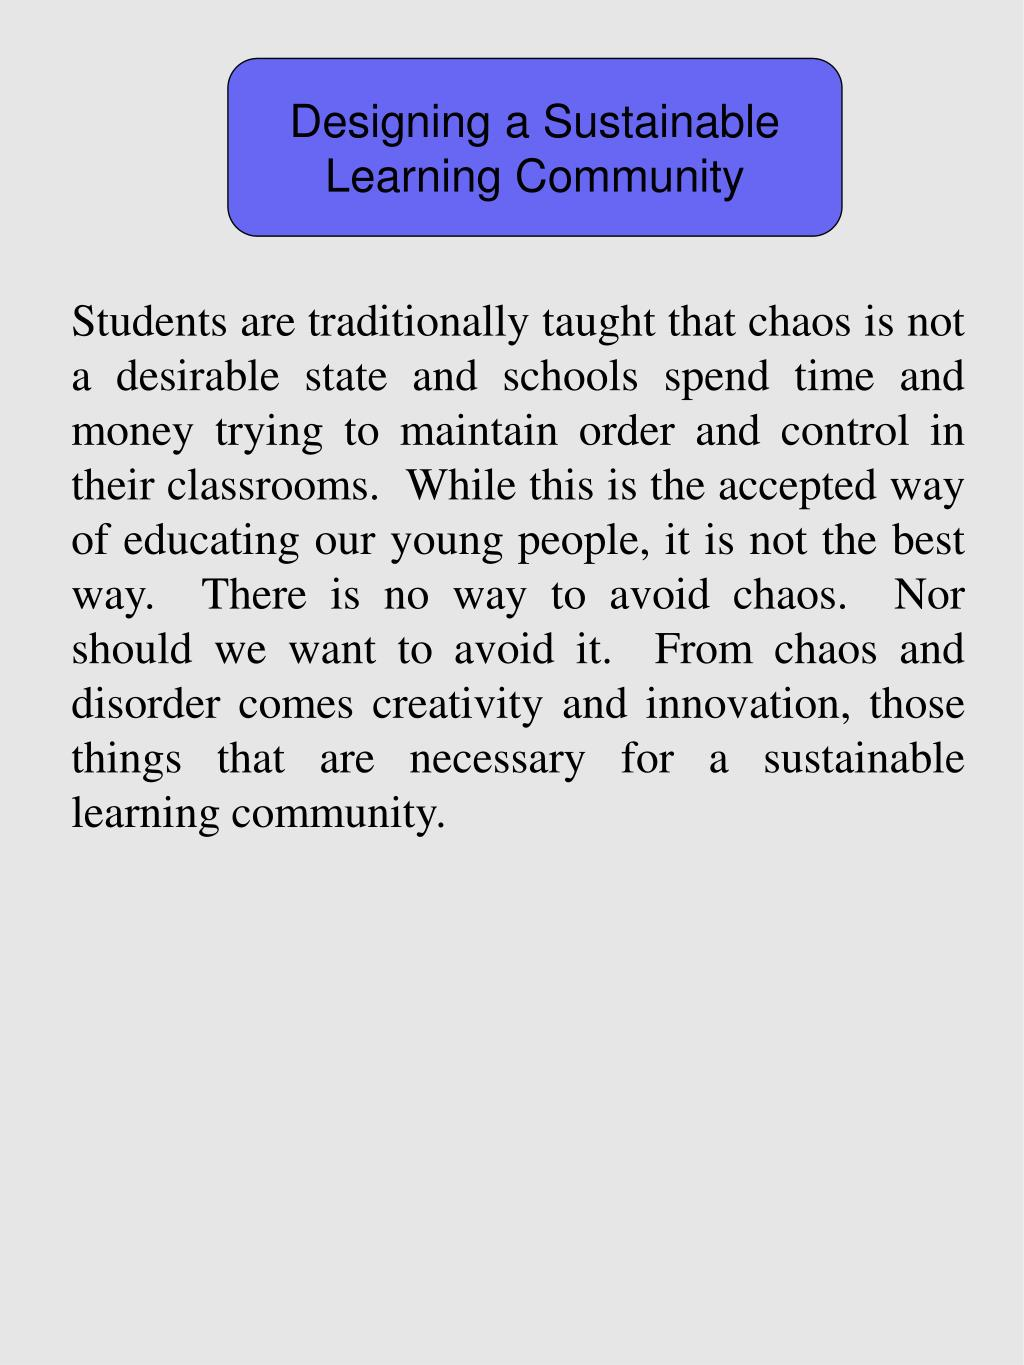 Designing a Sustainable Learning Community